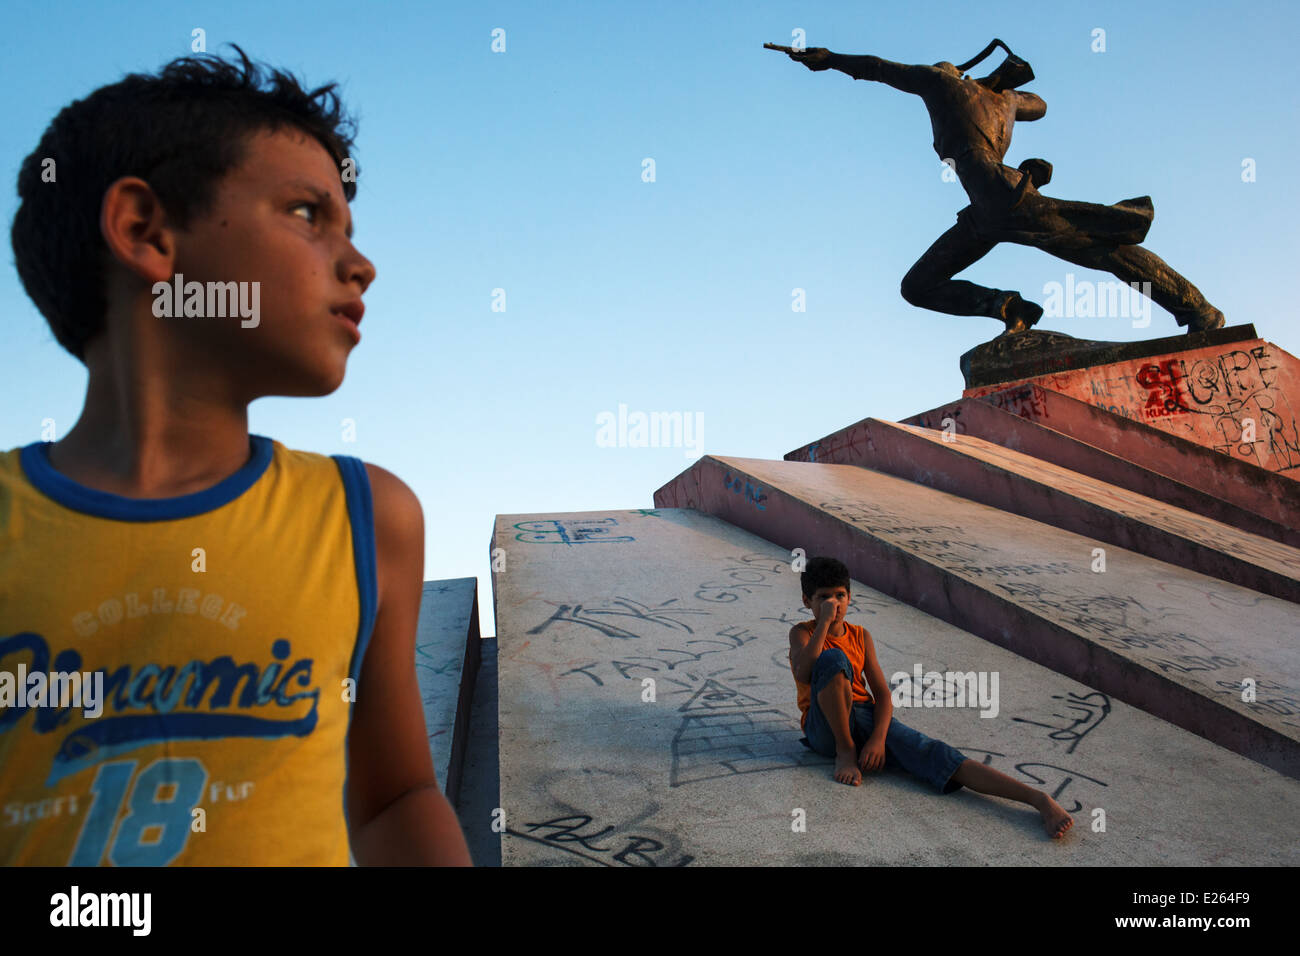 Young boys playing at Partizan Monument in Durres, Albania - Stock Image